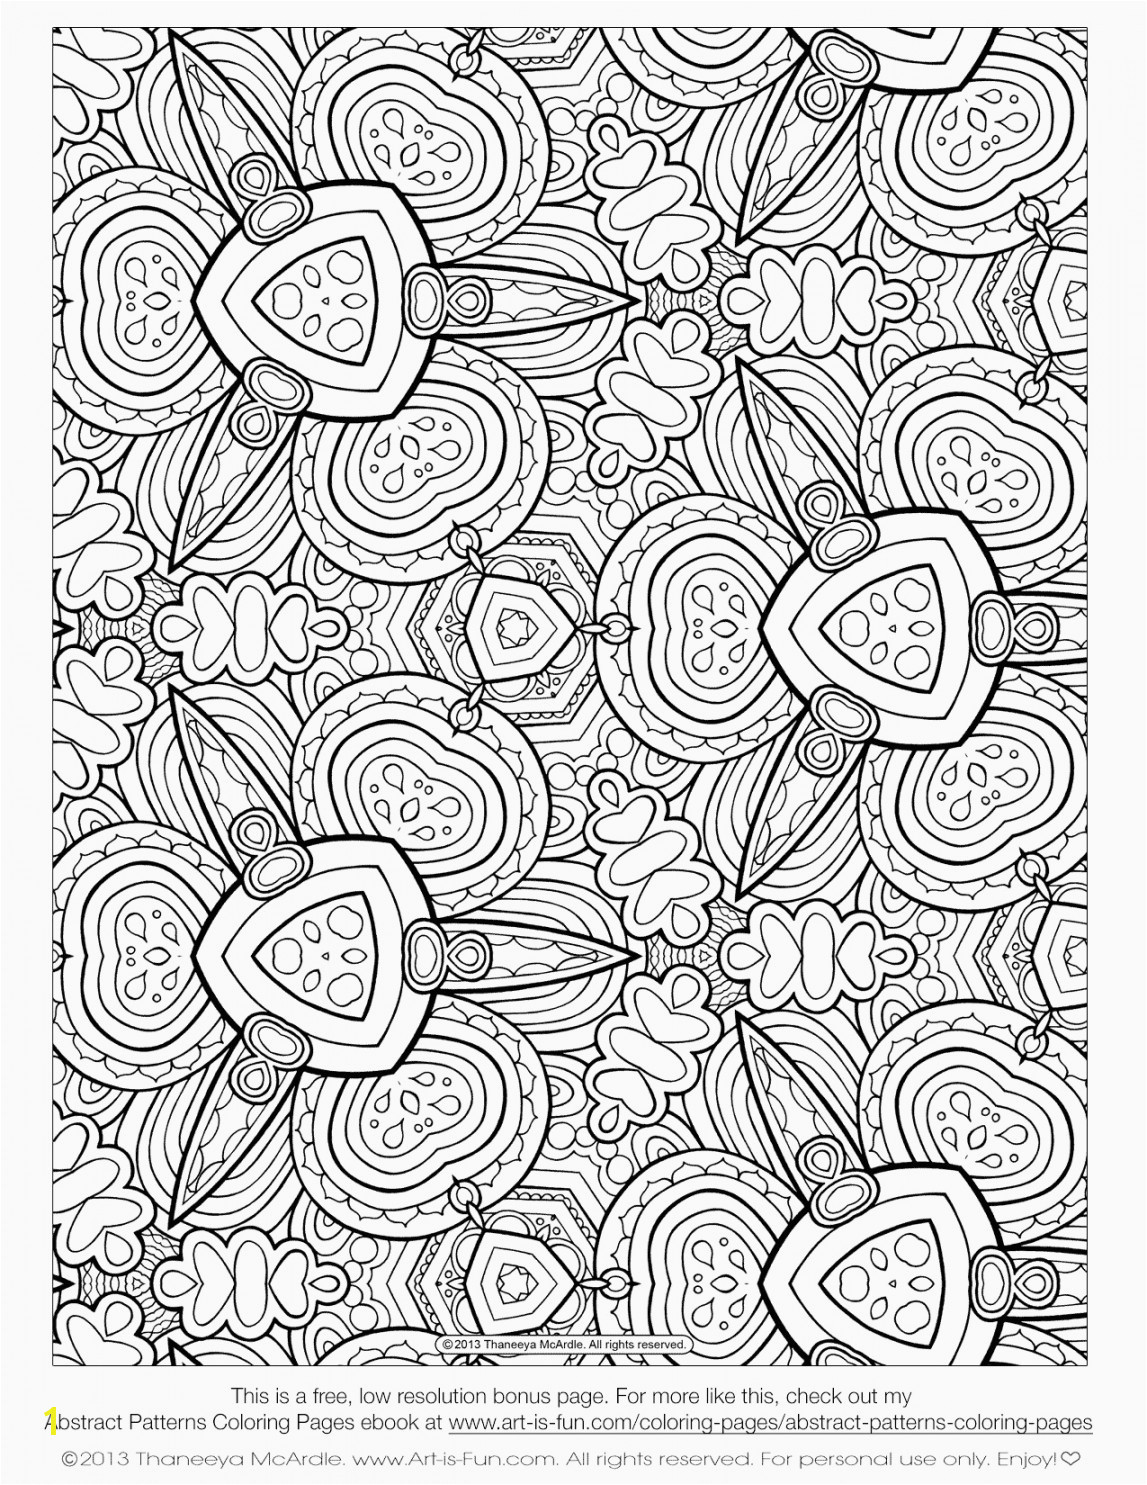 Helps Others Coloring Page · Dorcas Coloring Page Best Collections Love at Christmas Coloring Pages Unique Awesome Free Easy Coloring